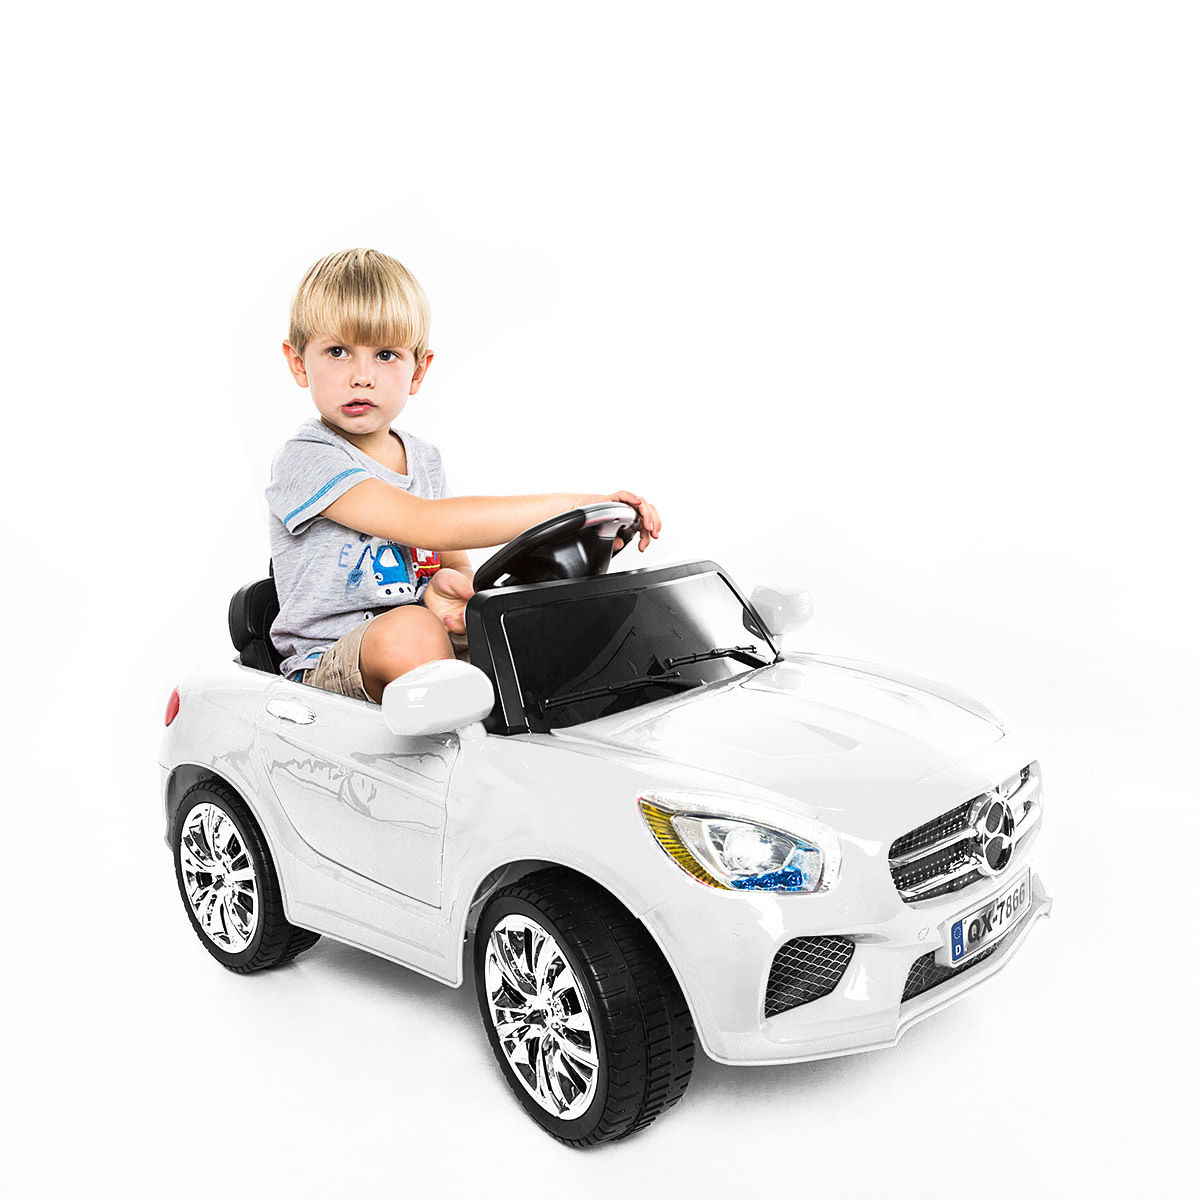 Costway 6V Kids Ride On Car RC Remote Control Battery Powered w/ LED Lights MP3 White